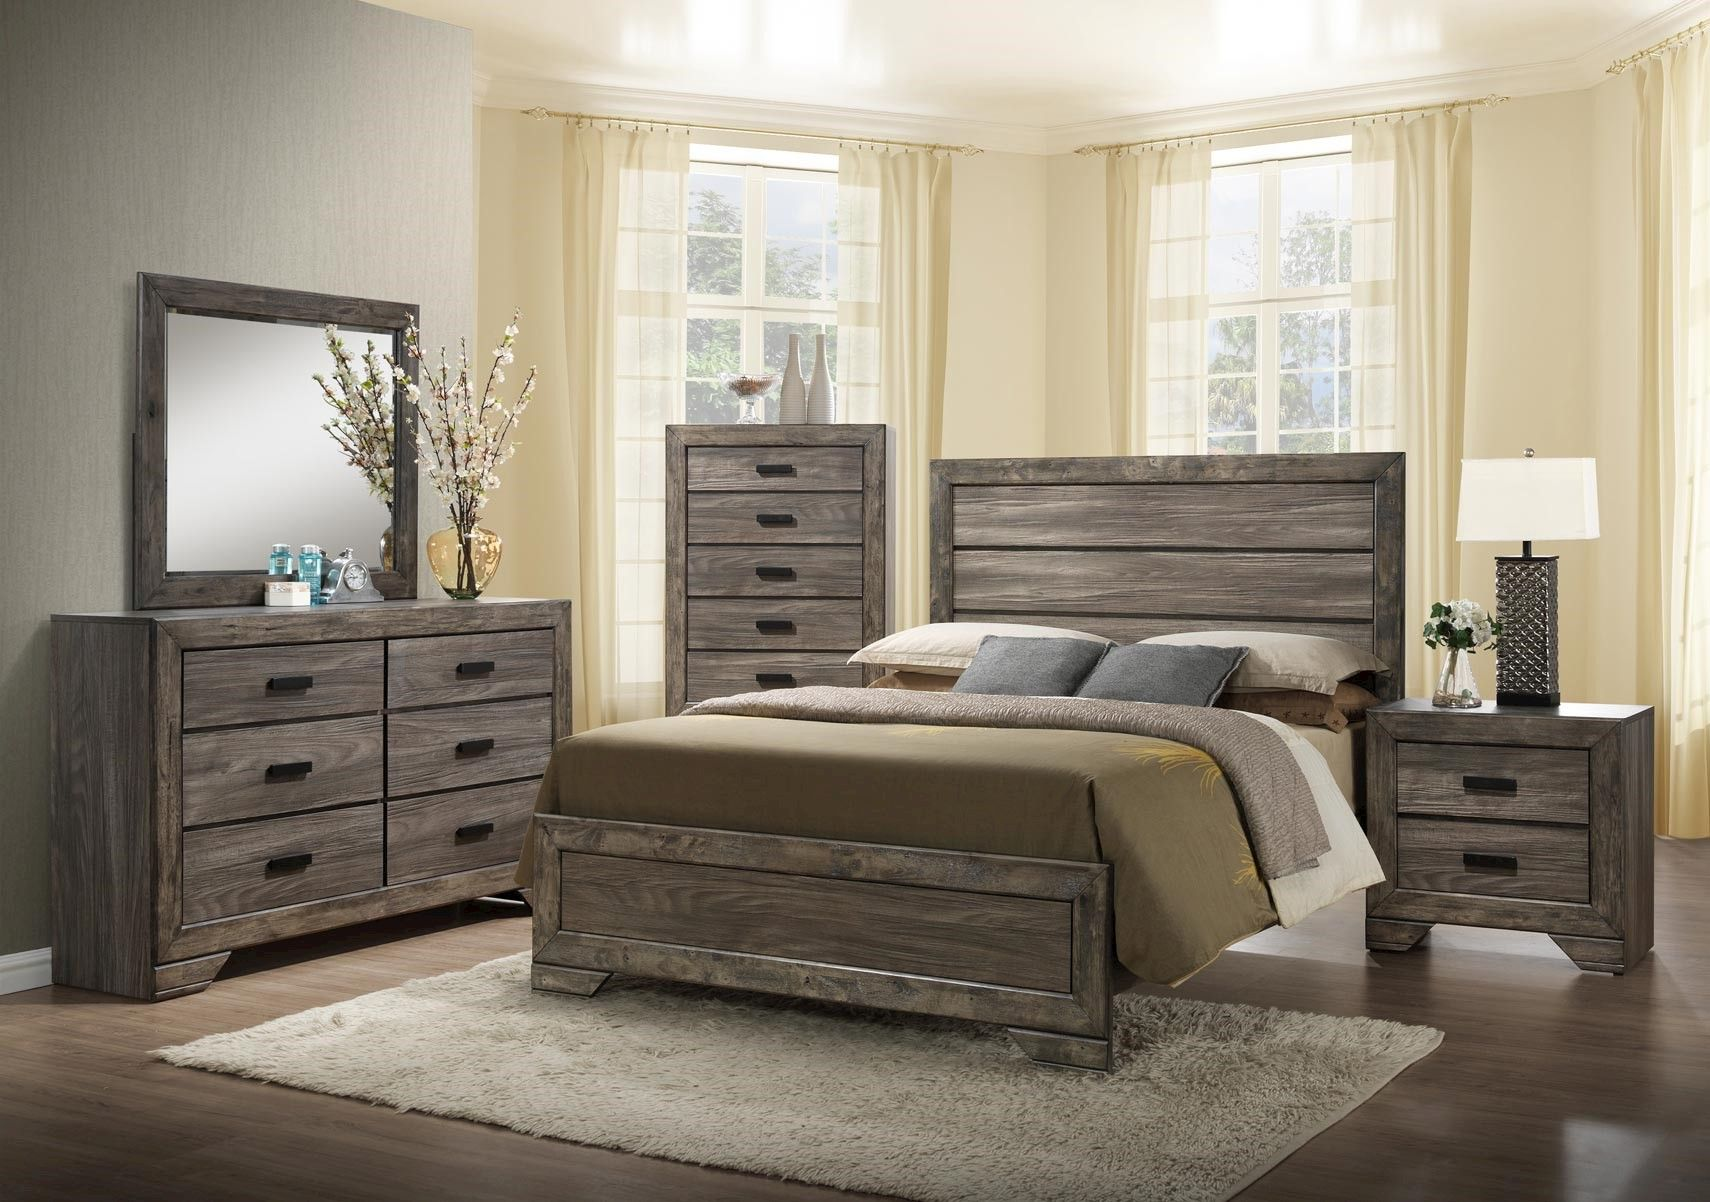 Lacks | Nathan 4-Pc Queen Bedroom Set | Bedrooms | Bedroom ...